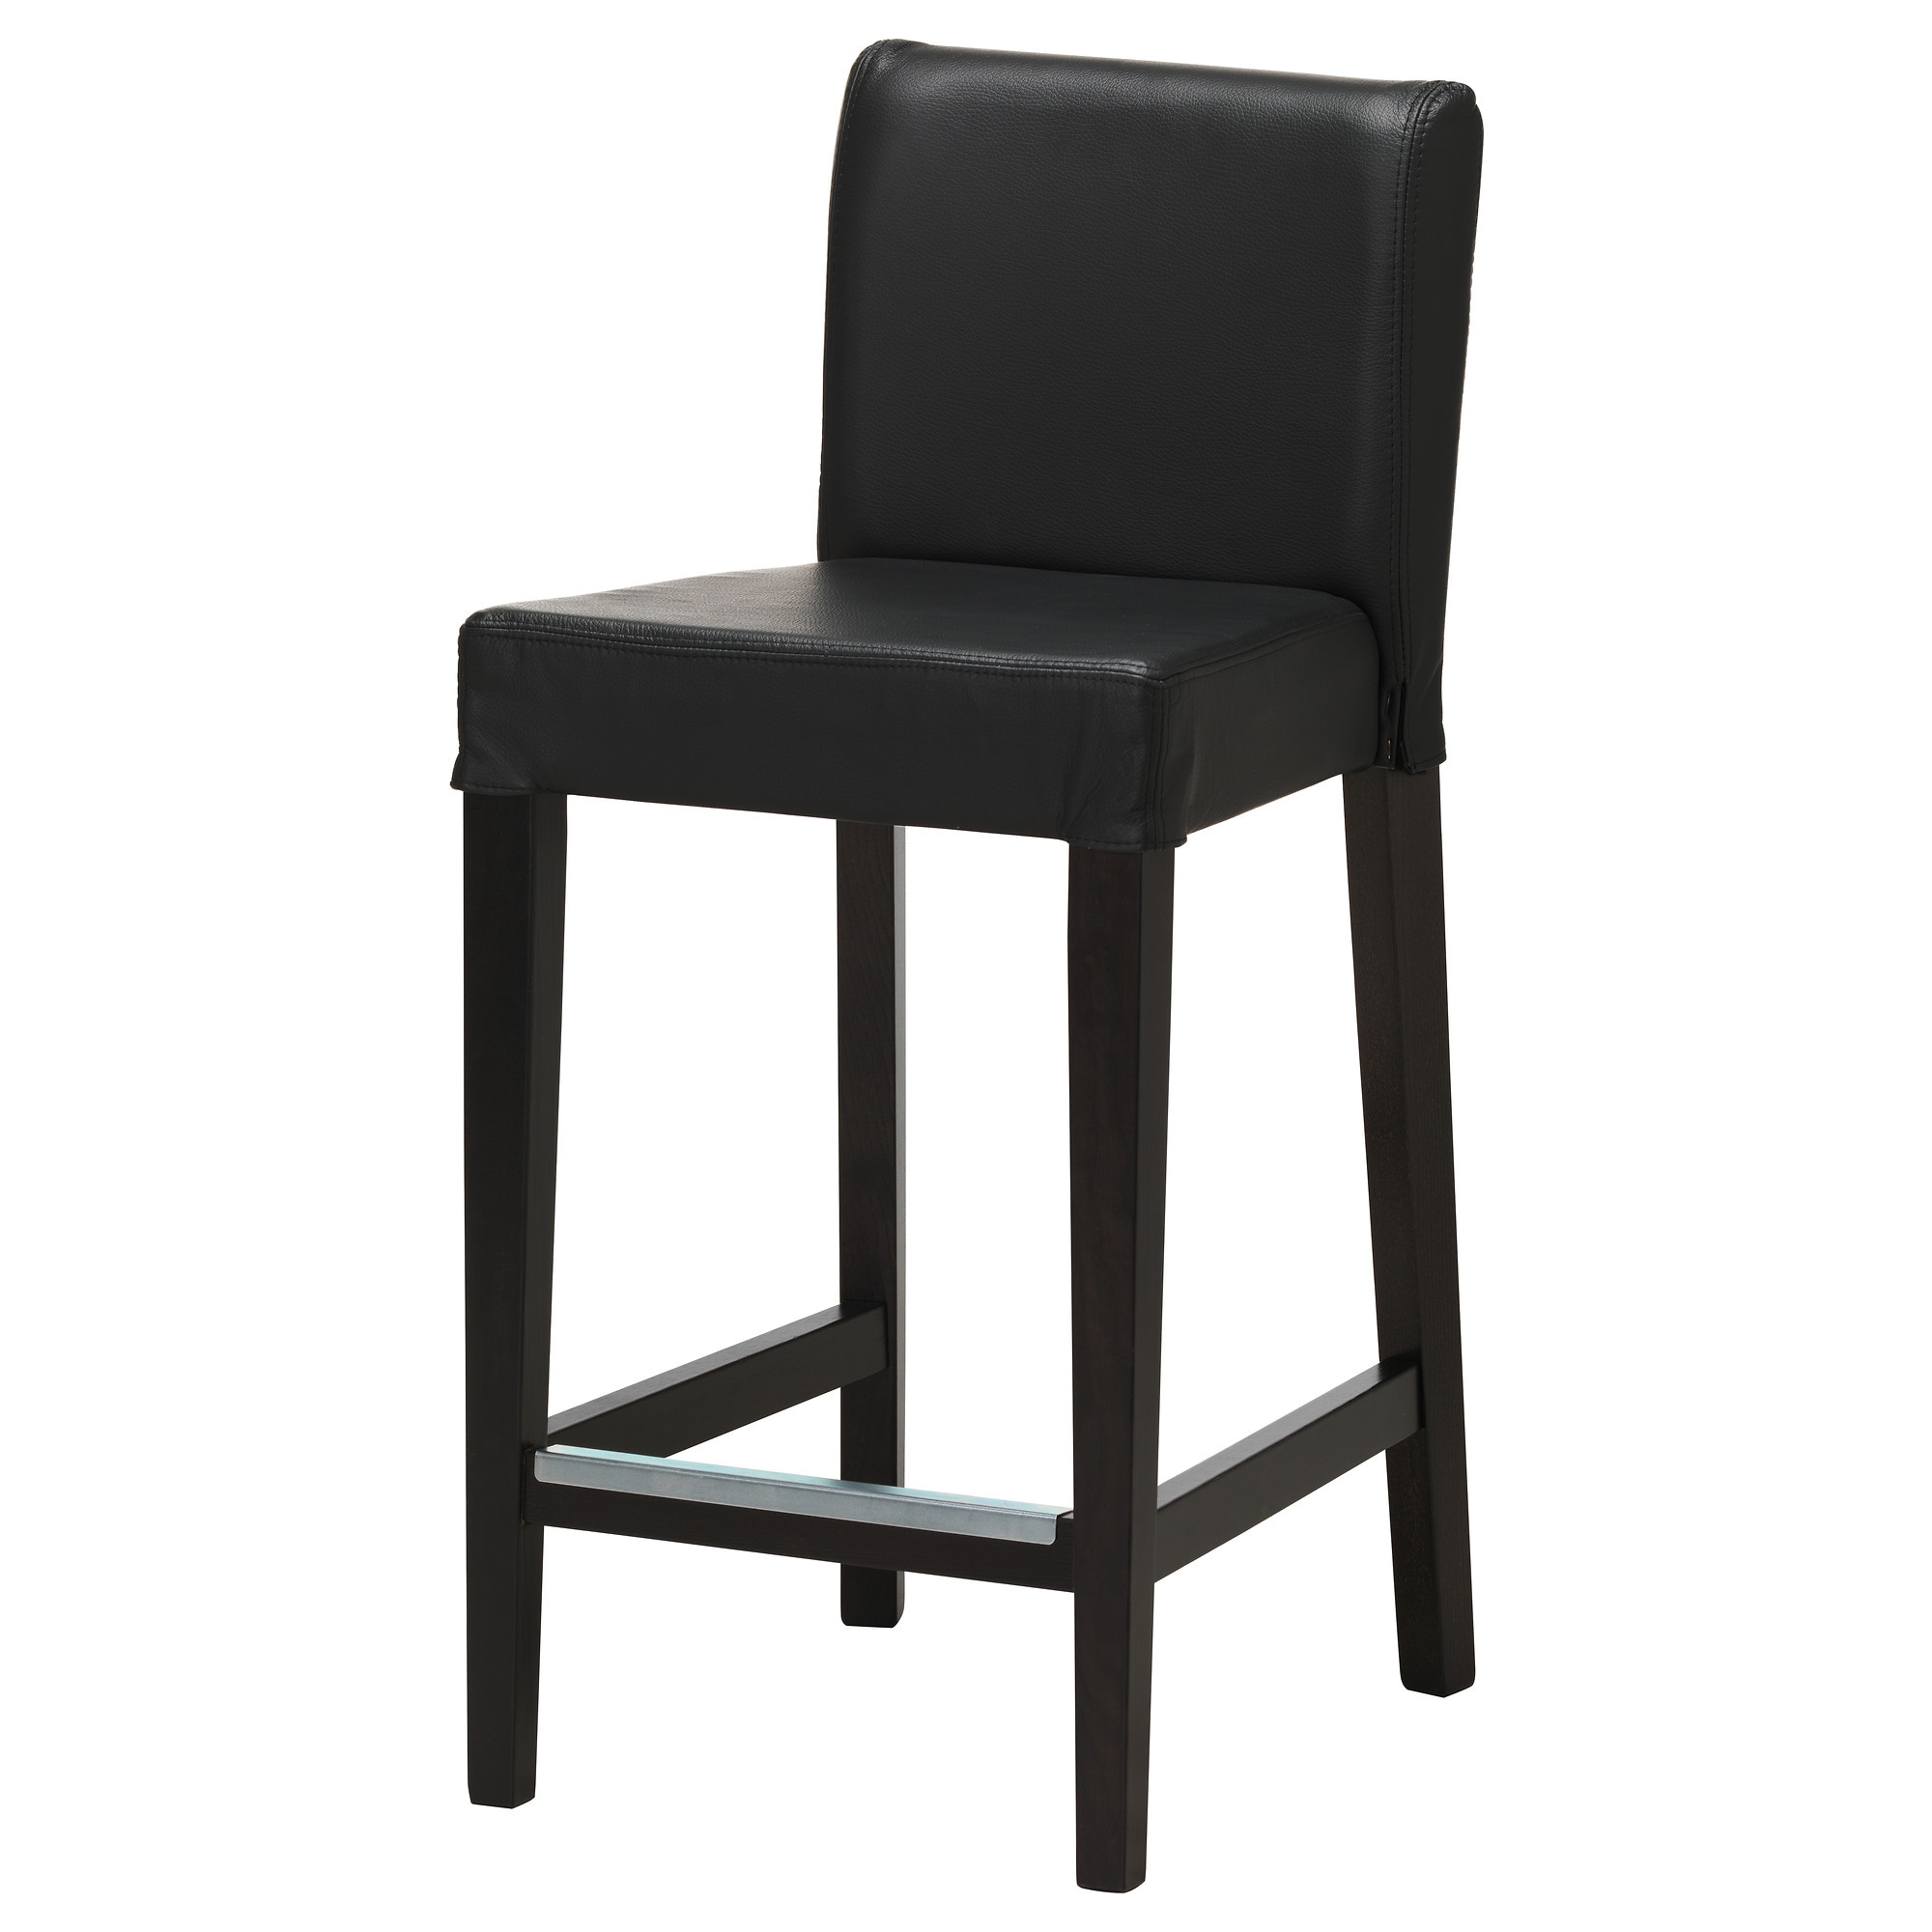 henriksdal bar stool with backrest brownblack glose black tested for 220